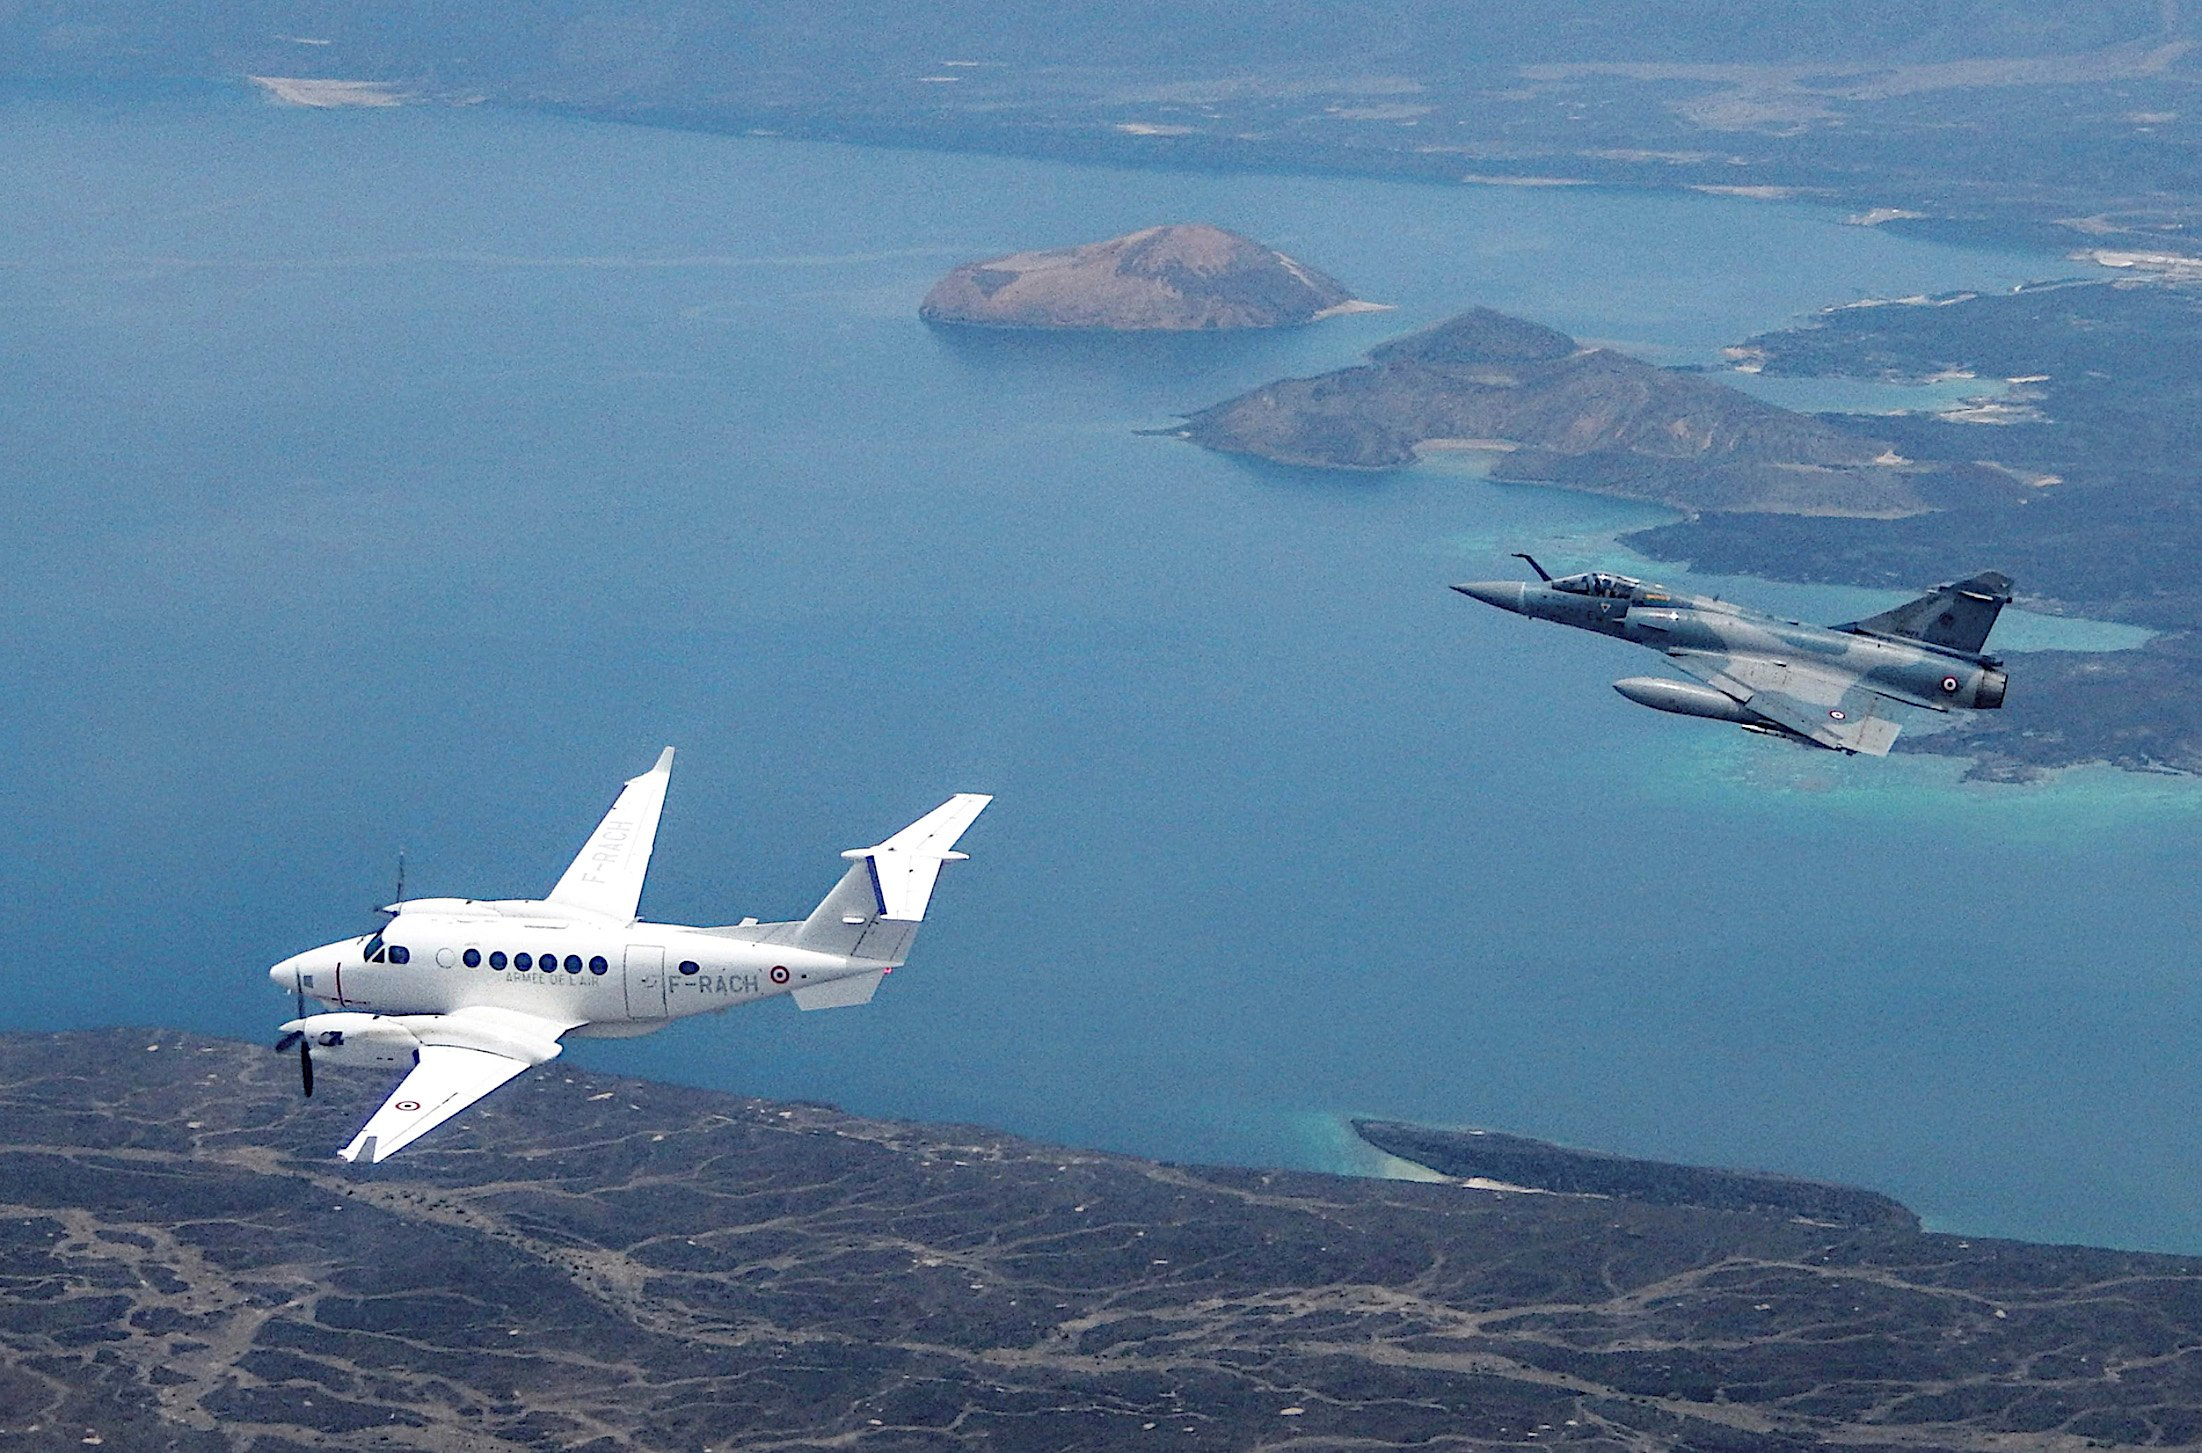 AAE King Air 350ER VADOR and Mirage 2000 [AAE/EC 03.011 'Corse']